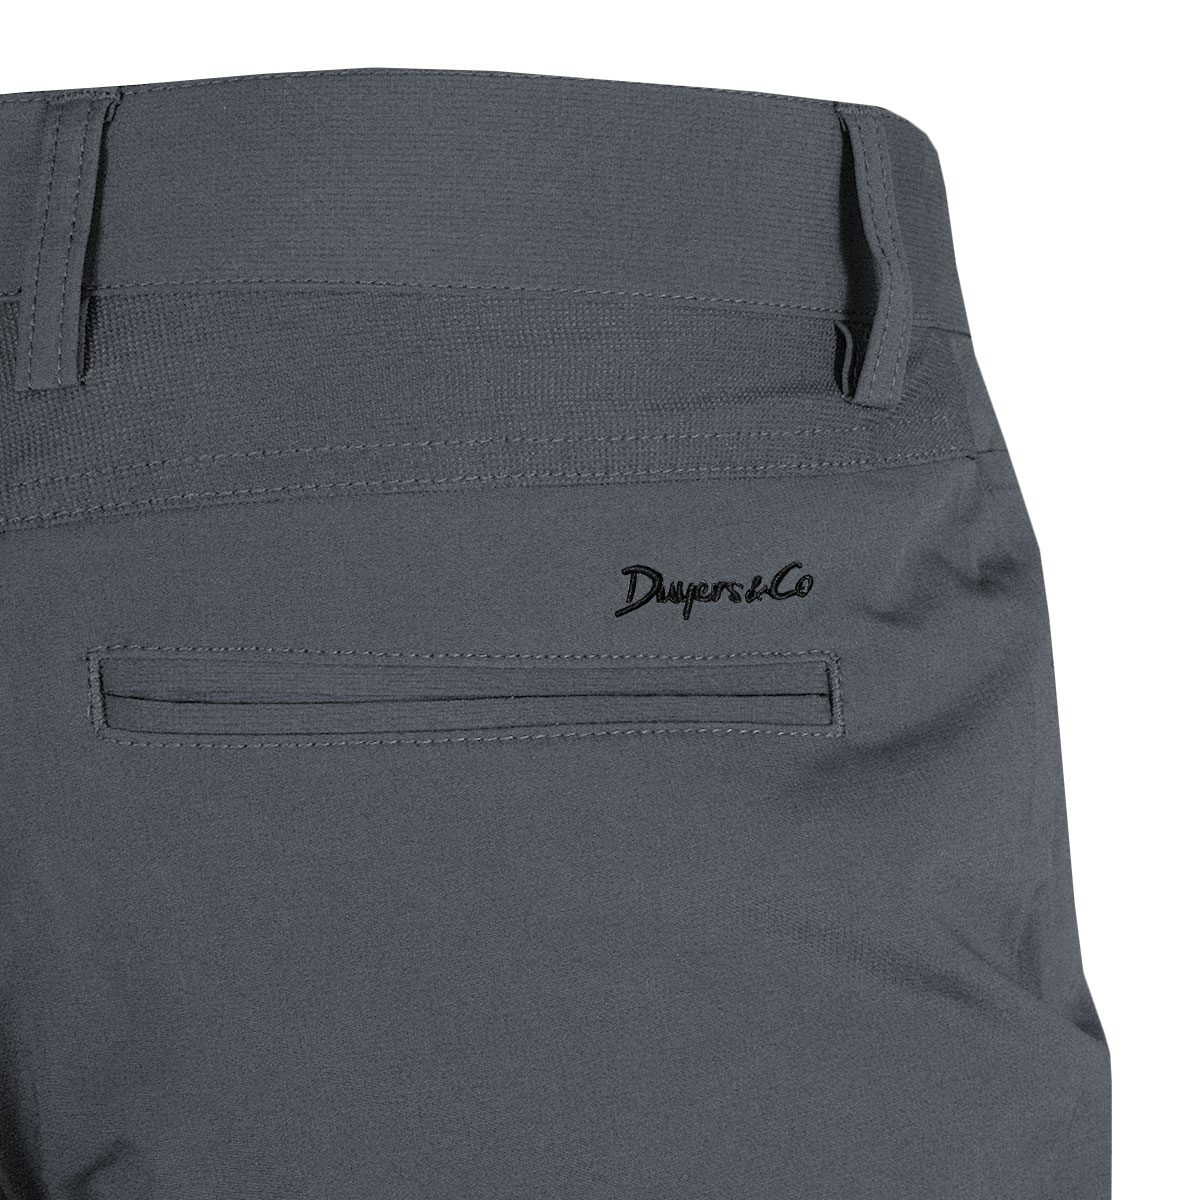 Dwyers-amp-Co-Mens-Micro-Tech-Golf-Technical-Water-Resistant-Trousers-33-OFF-RRP thumbnail 4